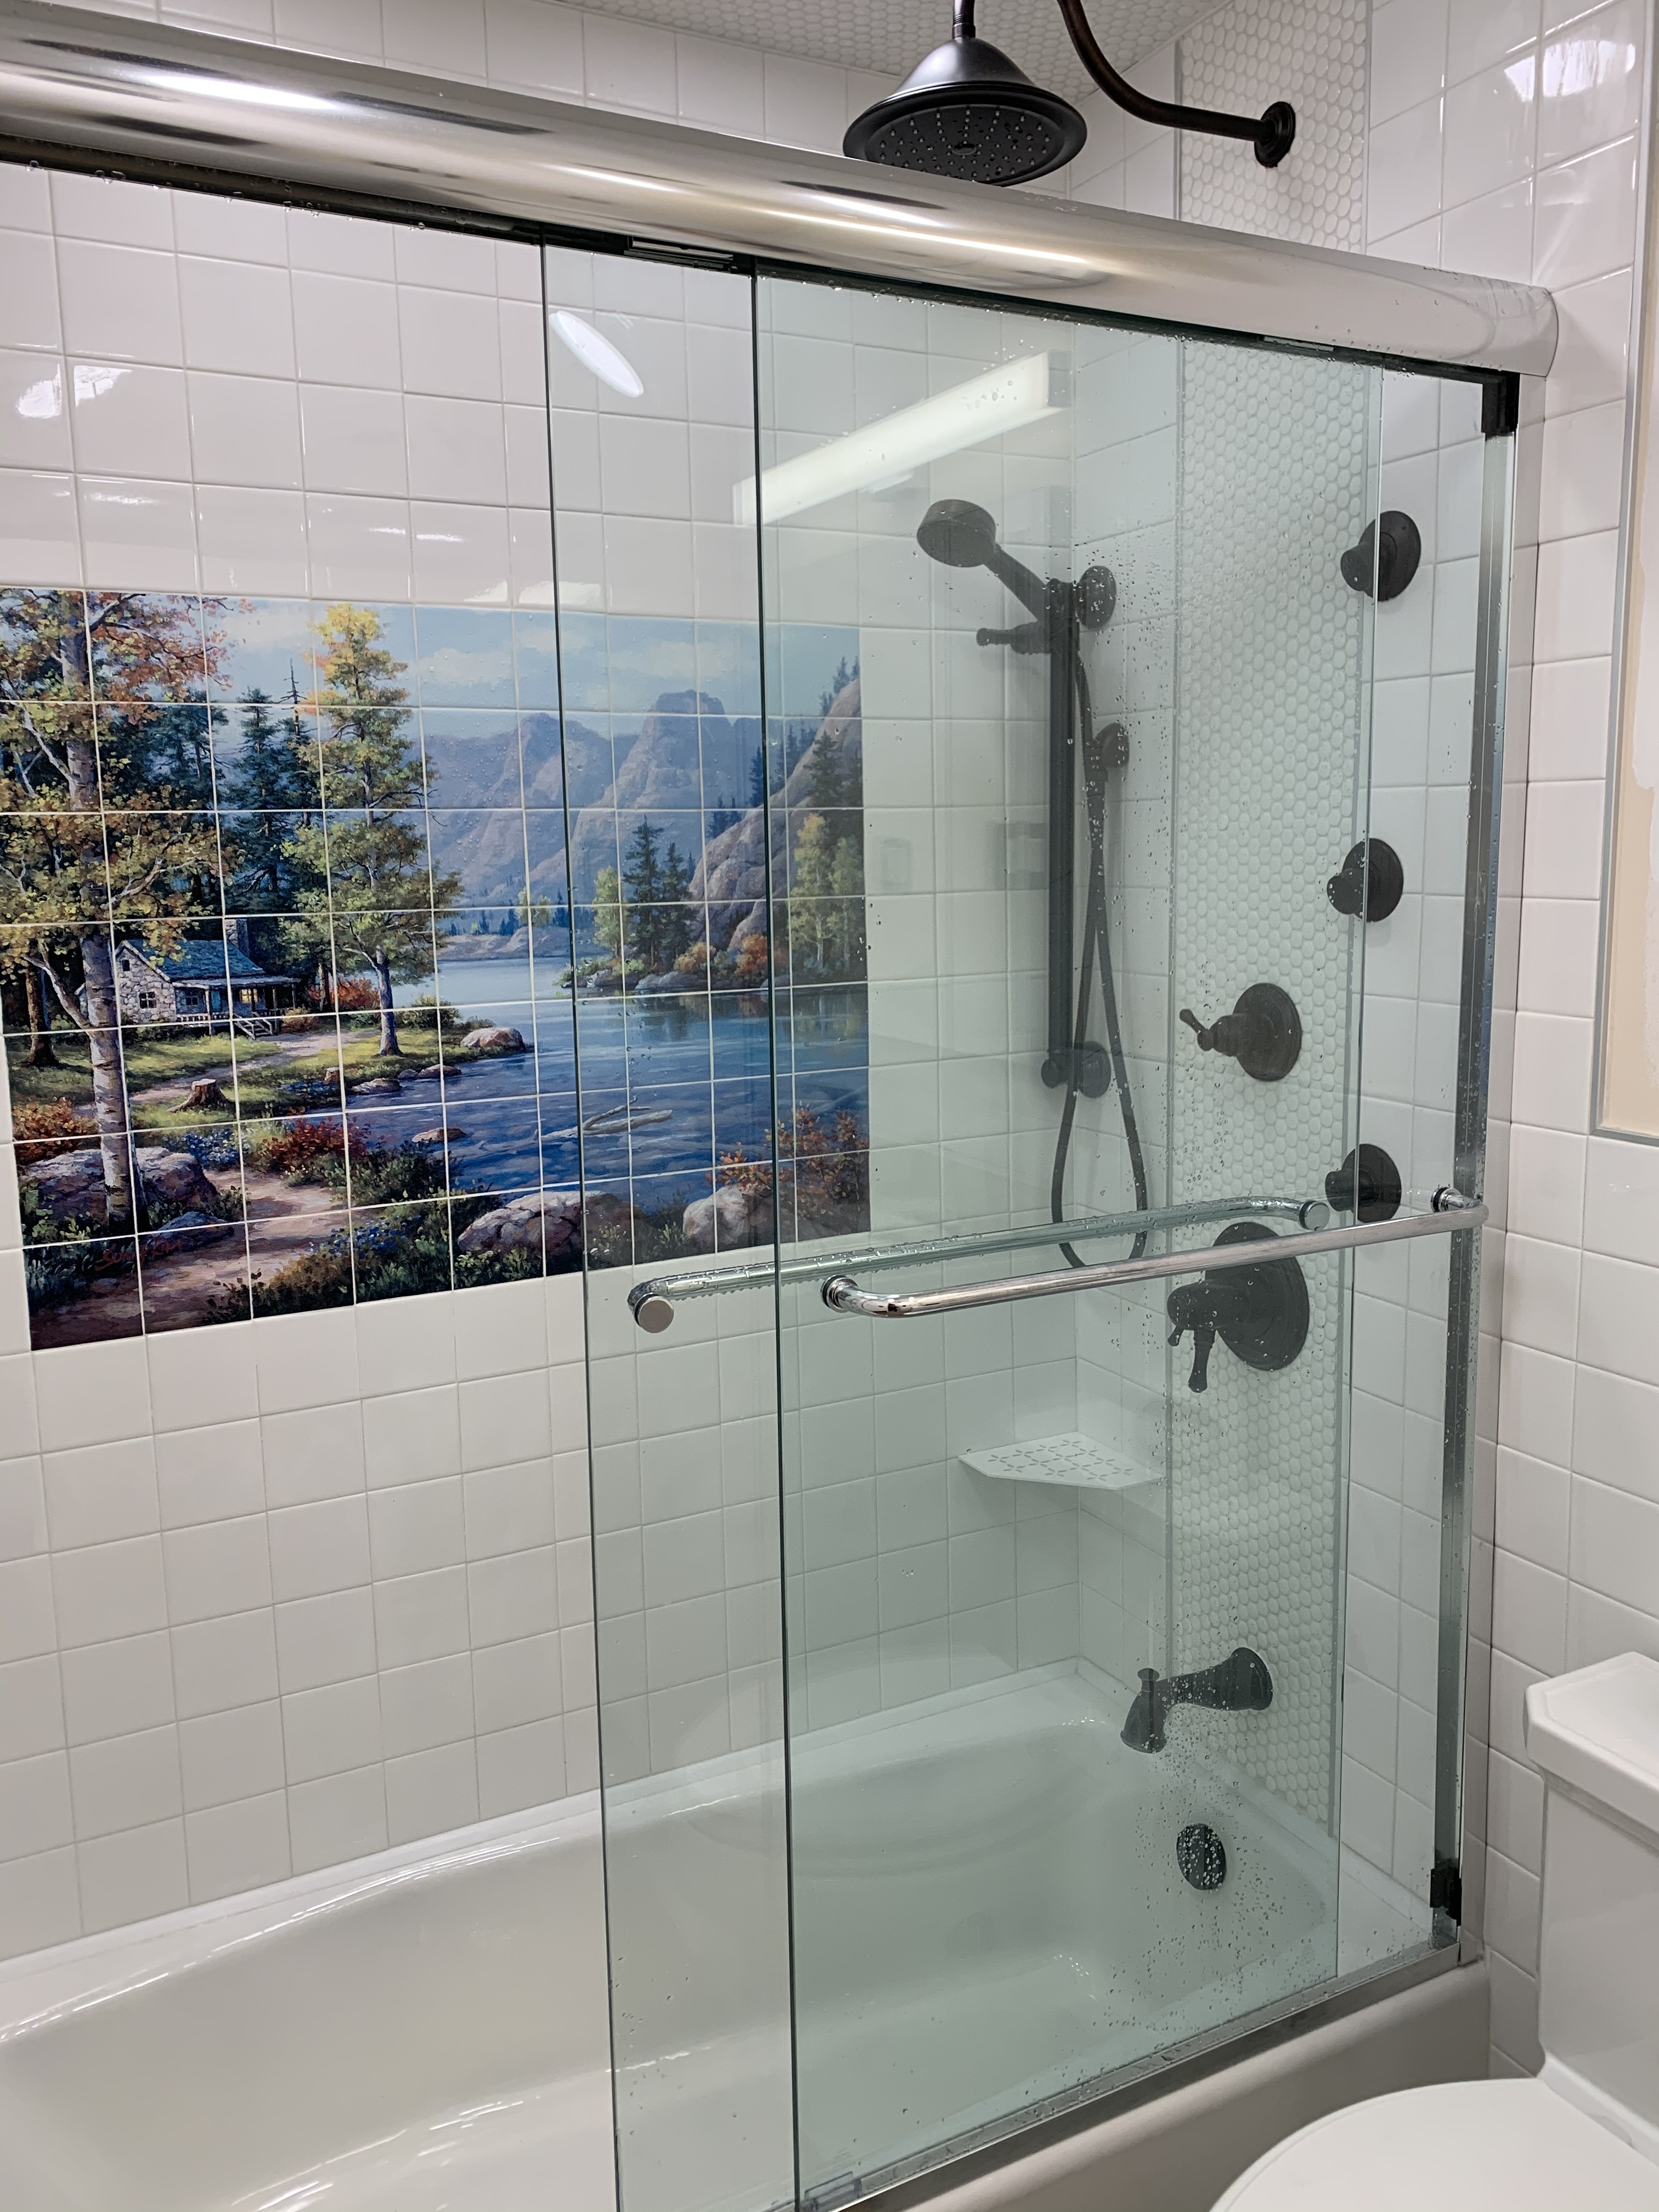 SS17T4971RB1 Delta Cassidy Tub Shower System with Hand Shower and Body Sprays plus Rain Showerhead